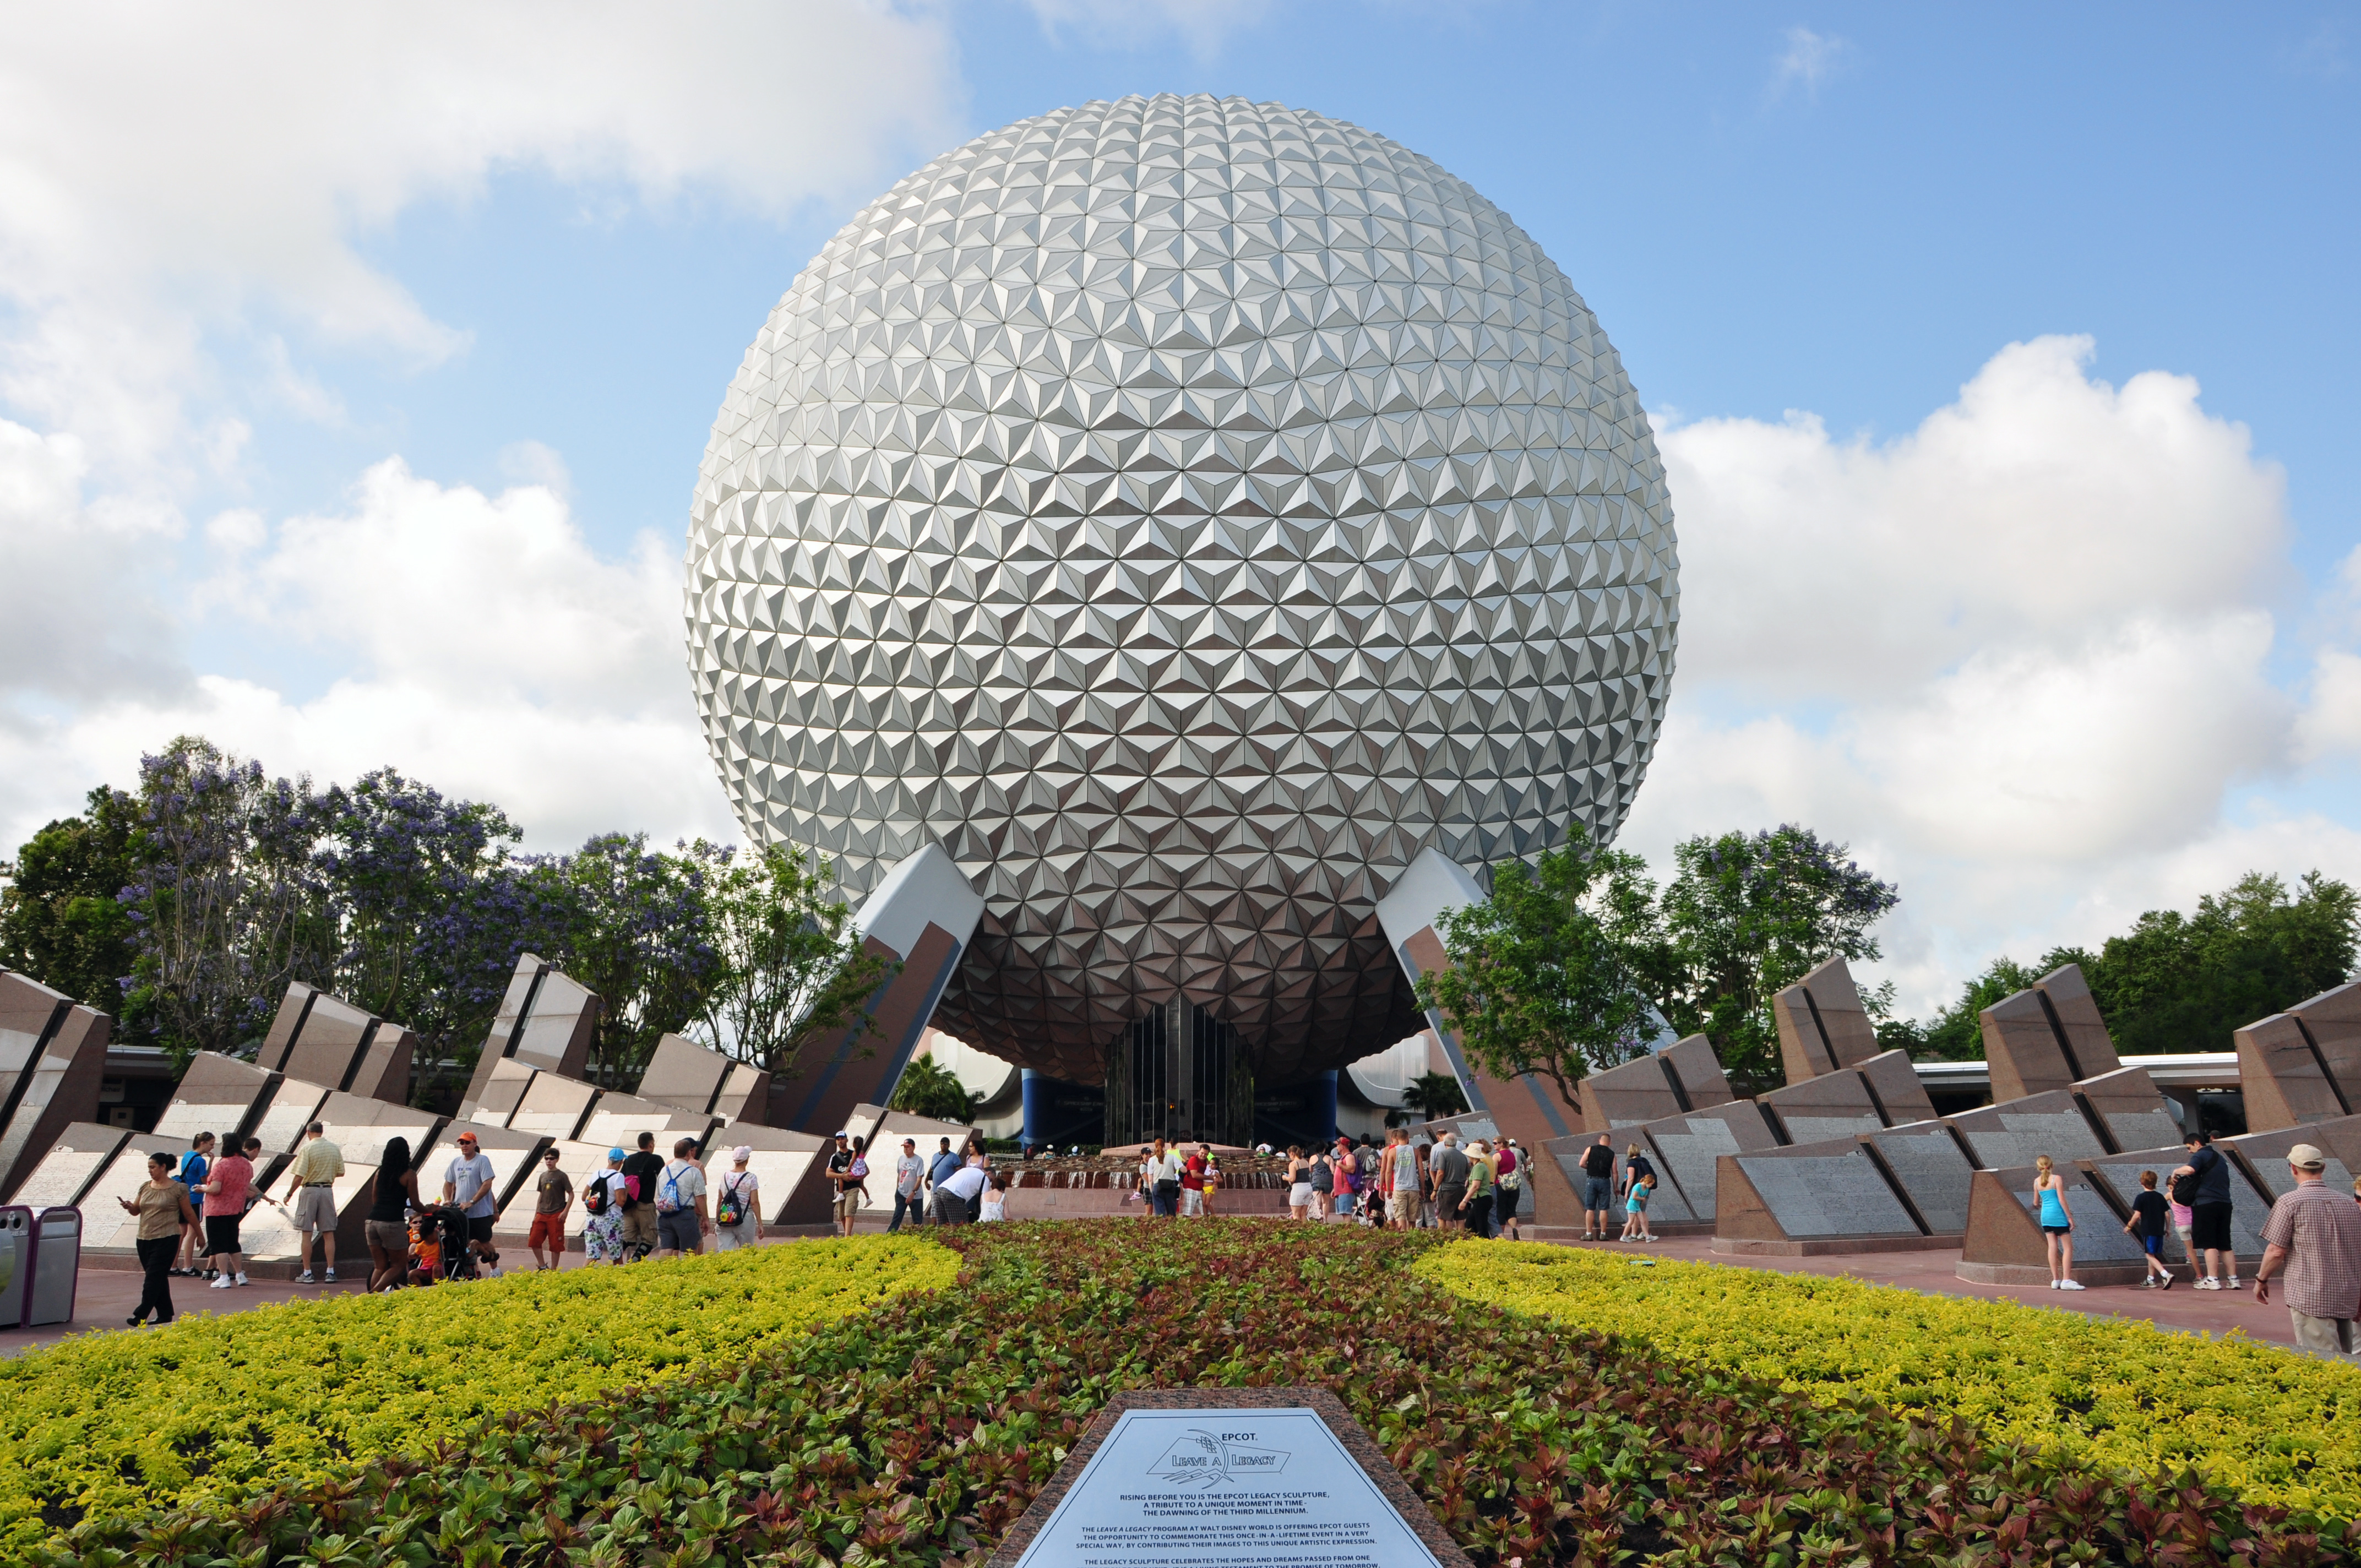 http://en.wikipedia.org/wiki/File:1_epcot_spaceship_earth_2010a.JPG